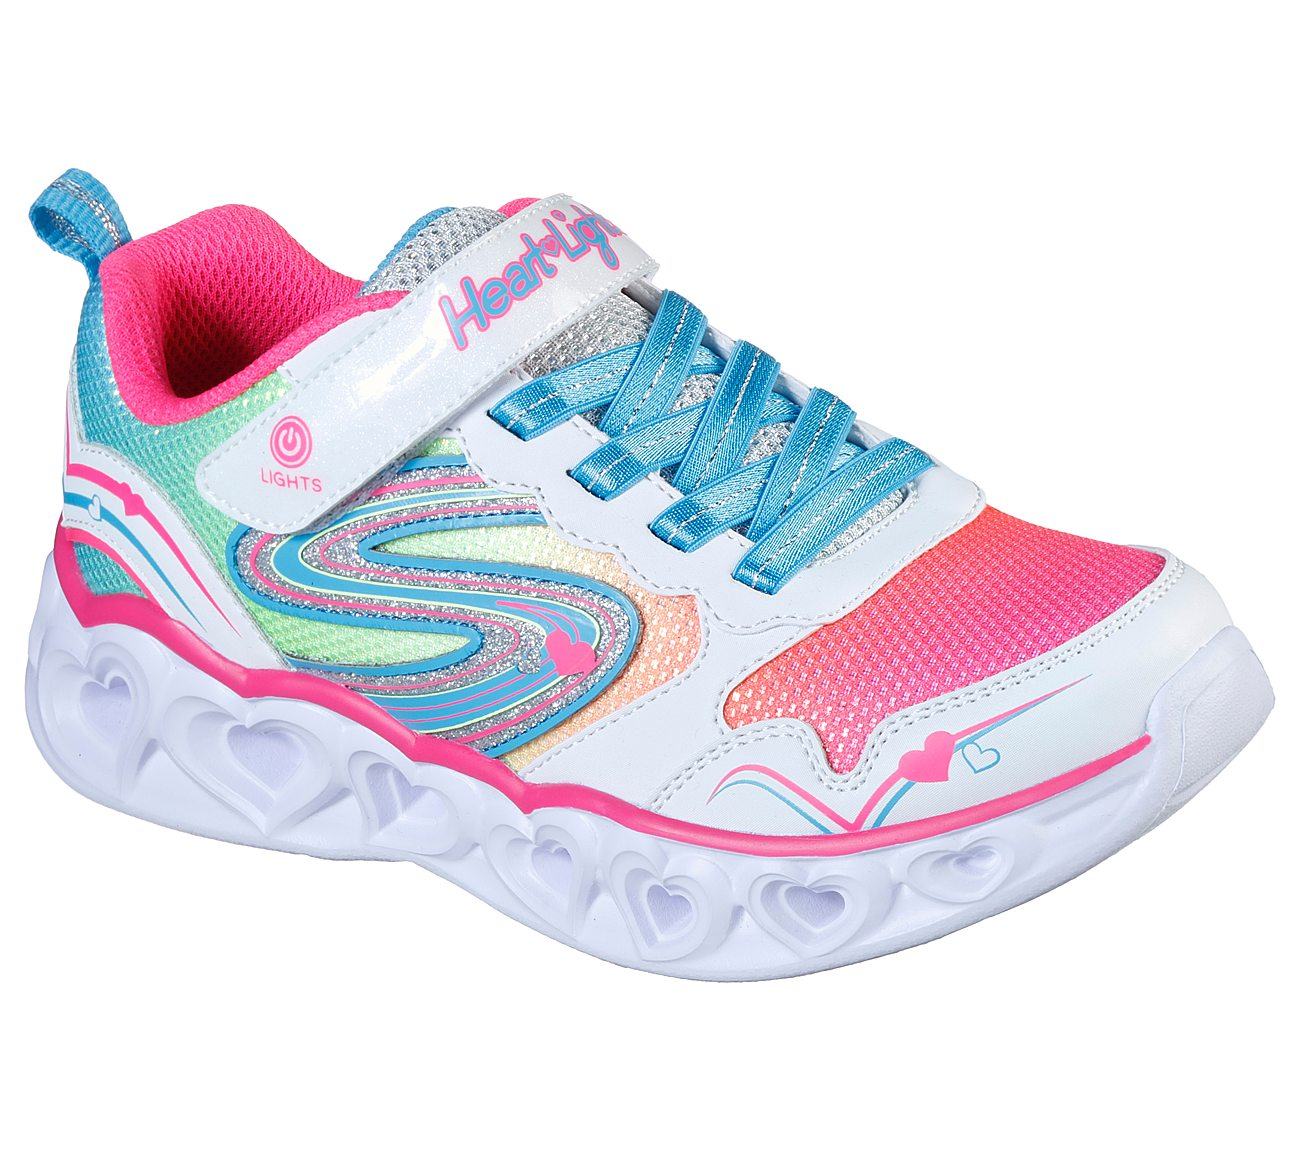 Skechers HEART LIGHTS Girls Casual Light Up Slip-On Trainers Silver Multicolour